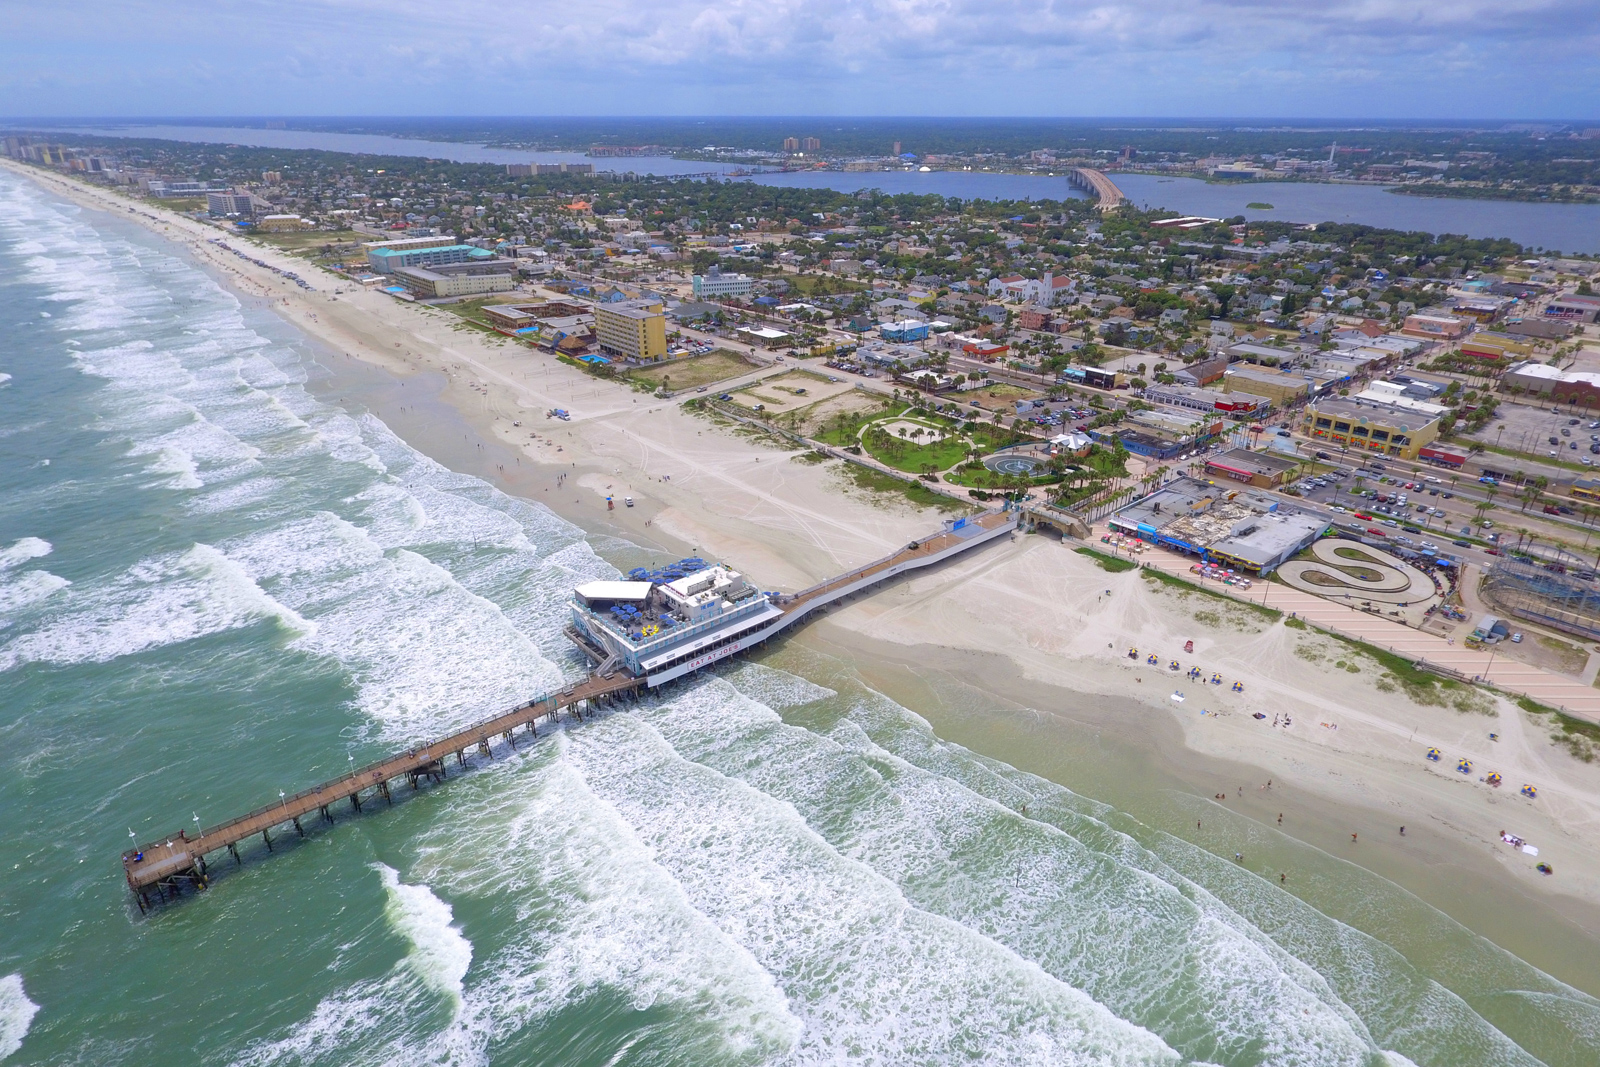 Aerial drone photo of Daytona Beach and fishing pier. One of the best Florida Beaches and best places to go in Florida. The beach has some of the best resorts in Florida on the best beaches in Florida. This photo a part of top 10 Beaches in Florida brought to you by Flying and Travel which presents all the nice beaches in Florida and best Florida vacation spots.